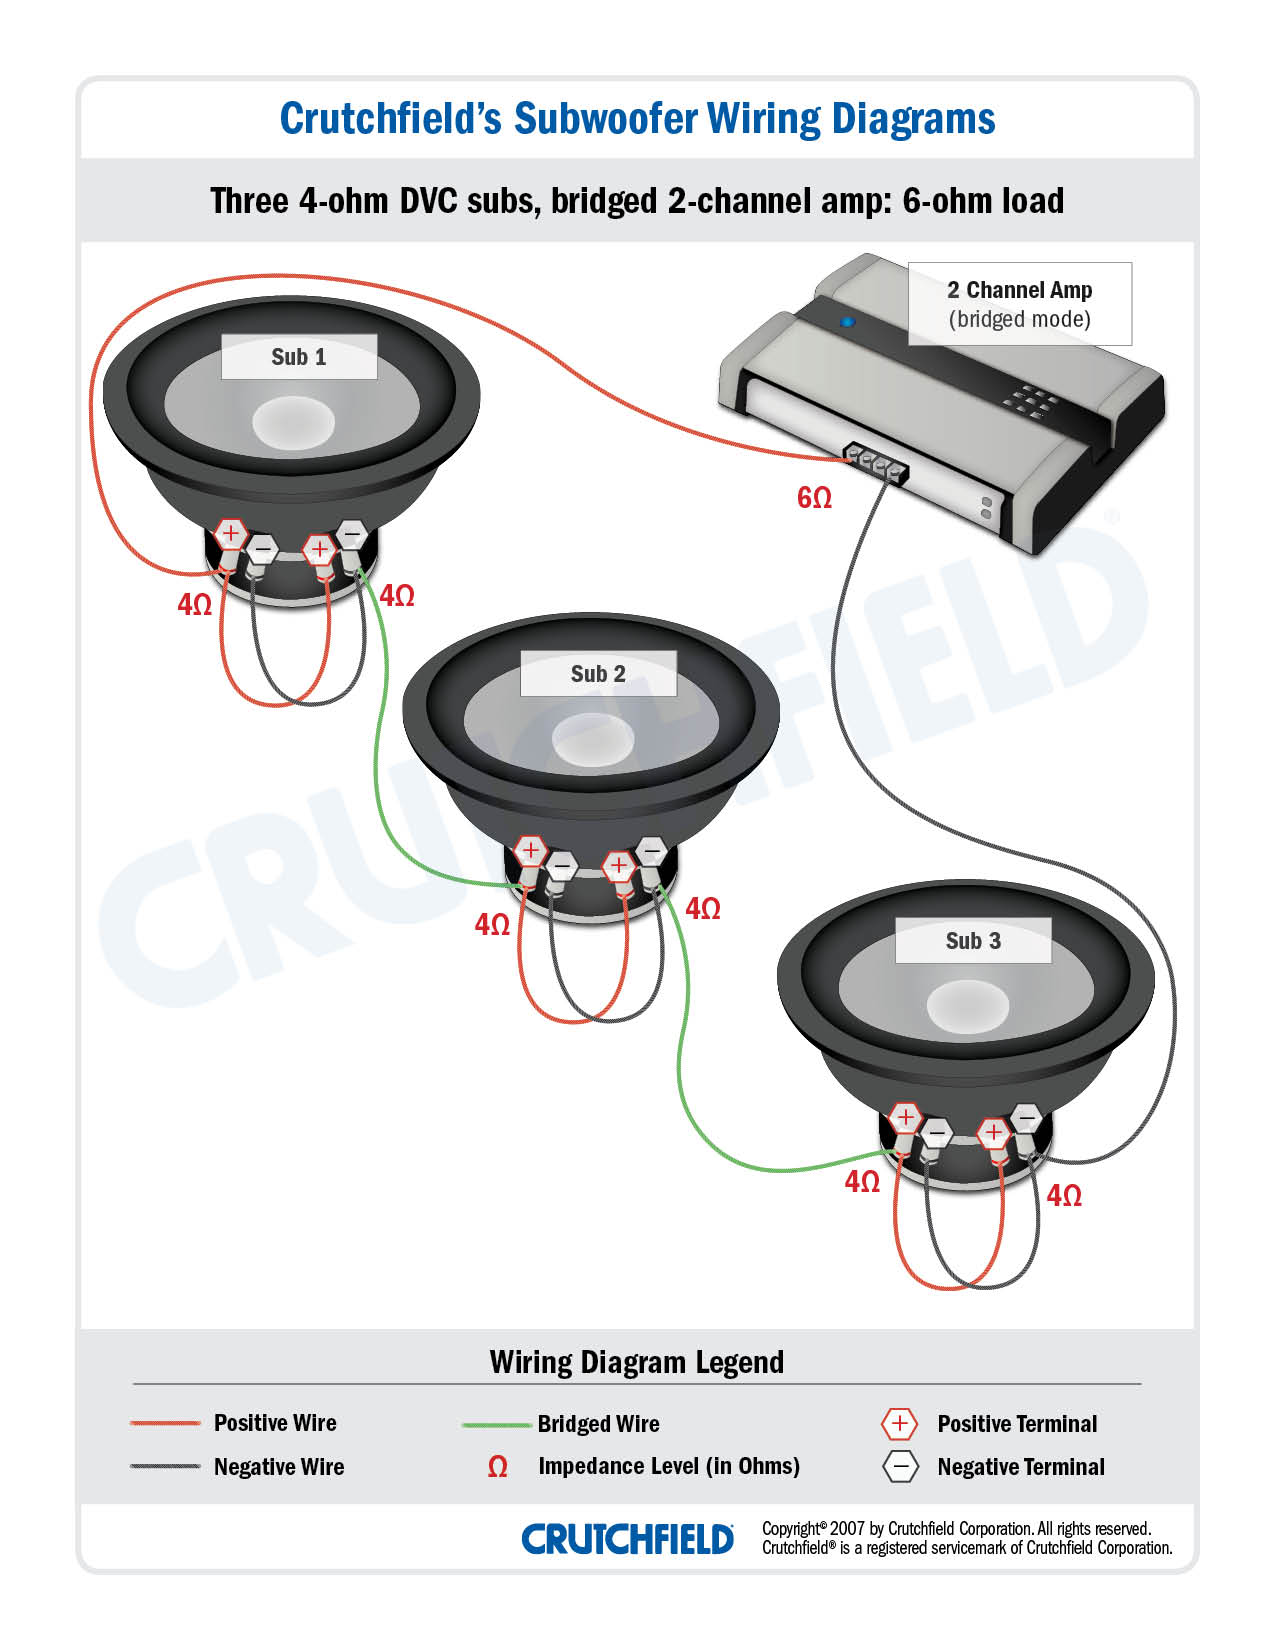 3 DVC 4 ohm 2 ch subwoofer wiring diagrams subwoofer wiring diagrams at bayanpartner.co